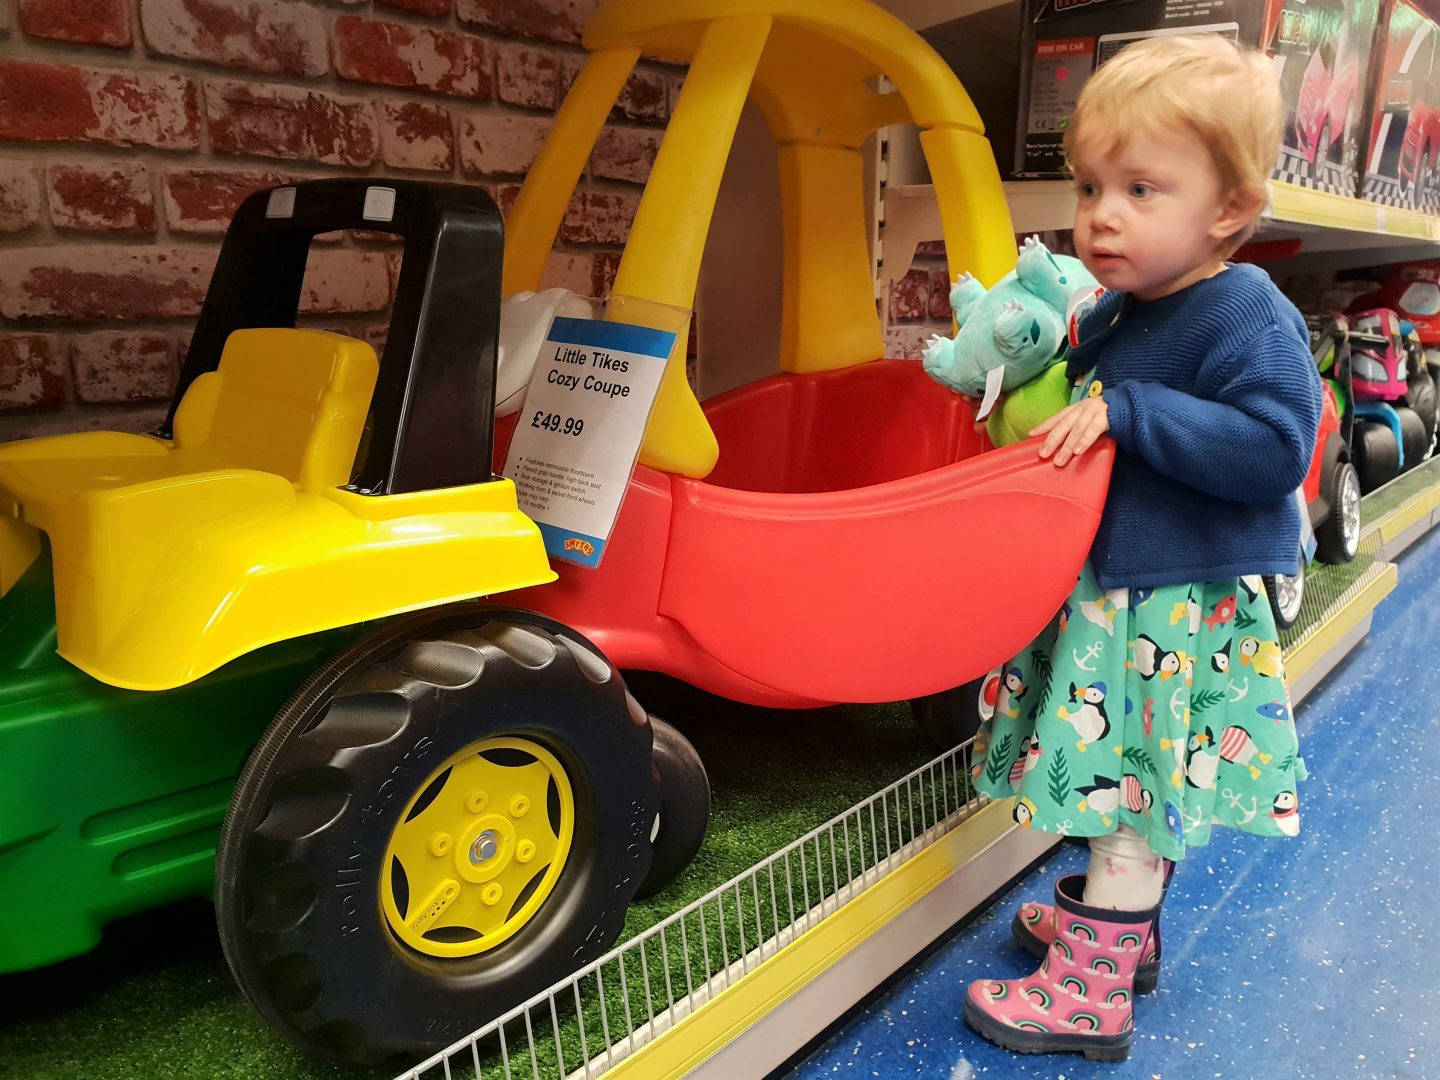 Toddler looking at toy car in Smyths Toys, South Aylesford Retail Park